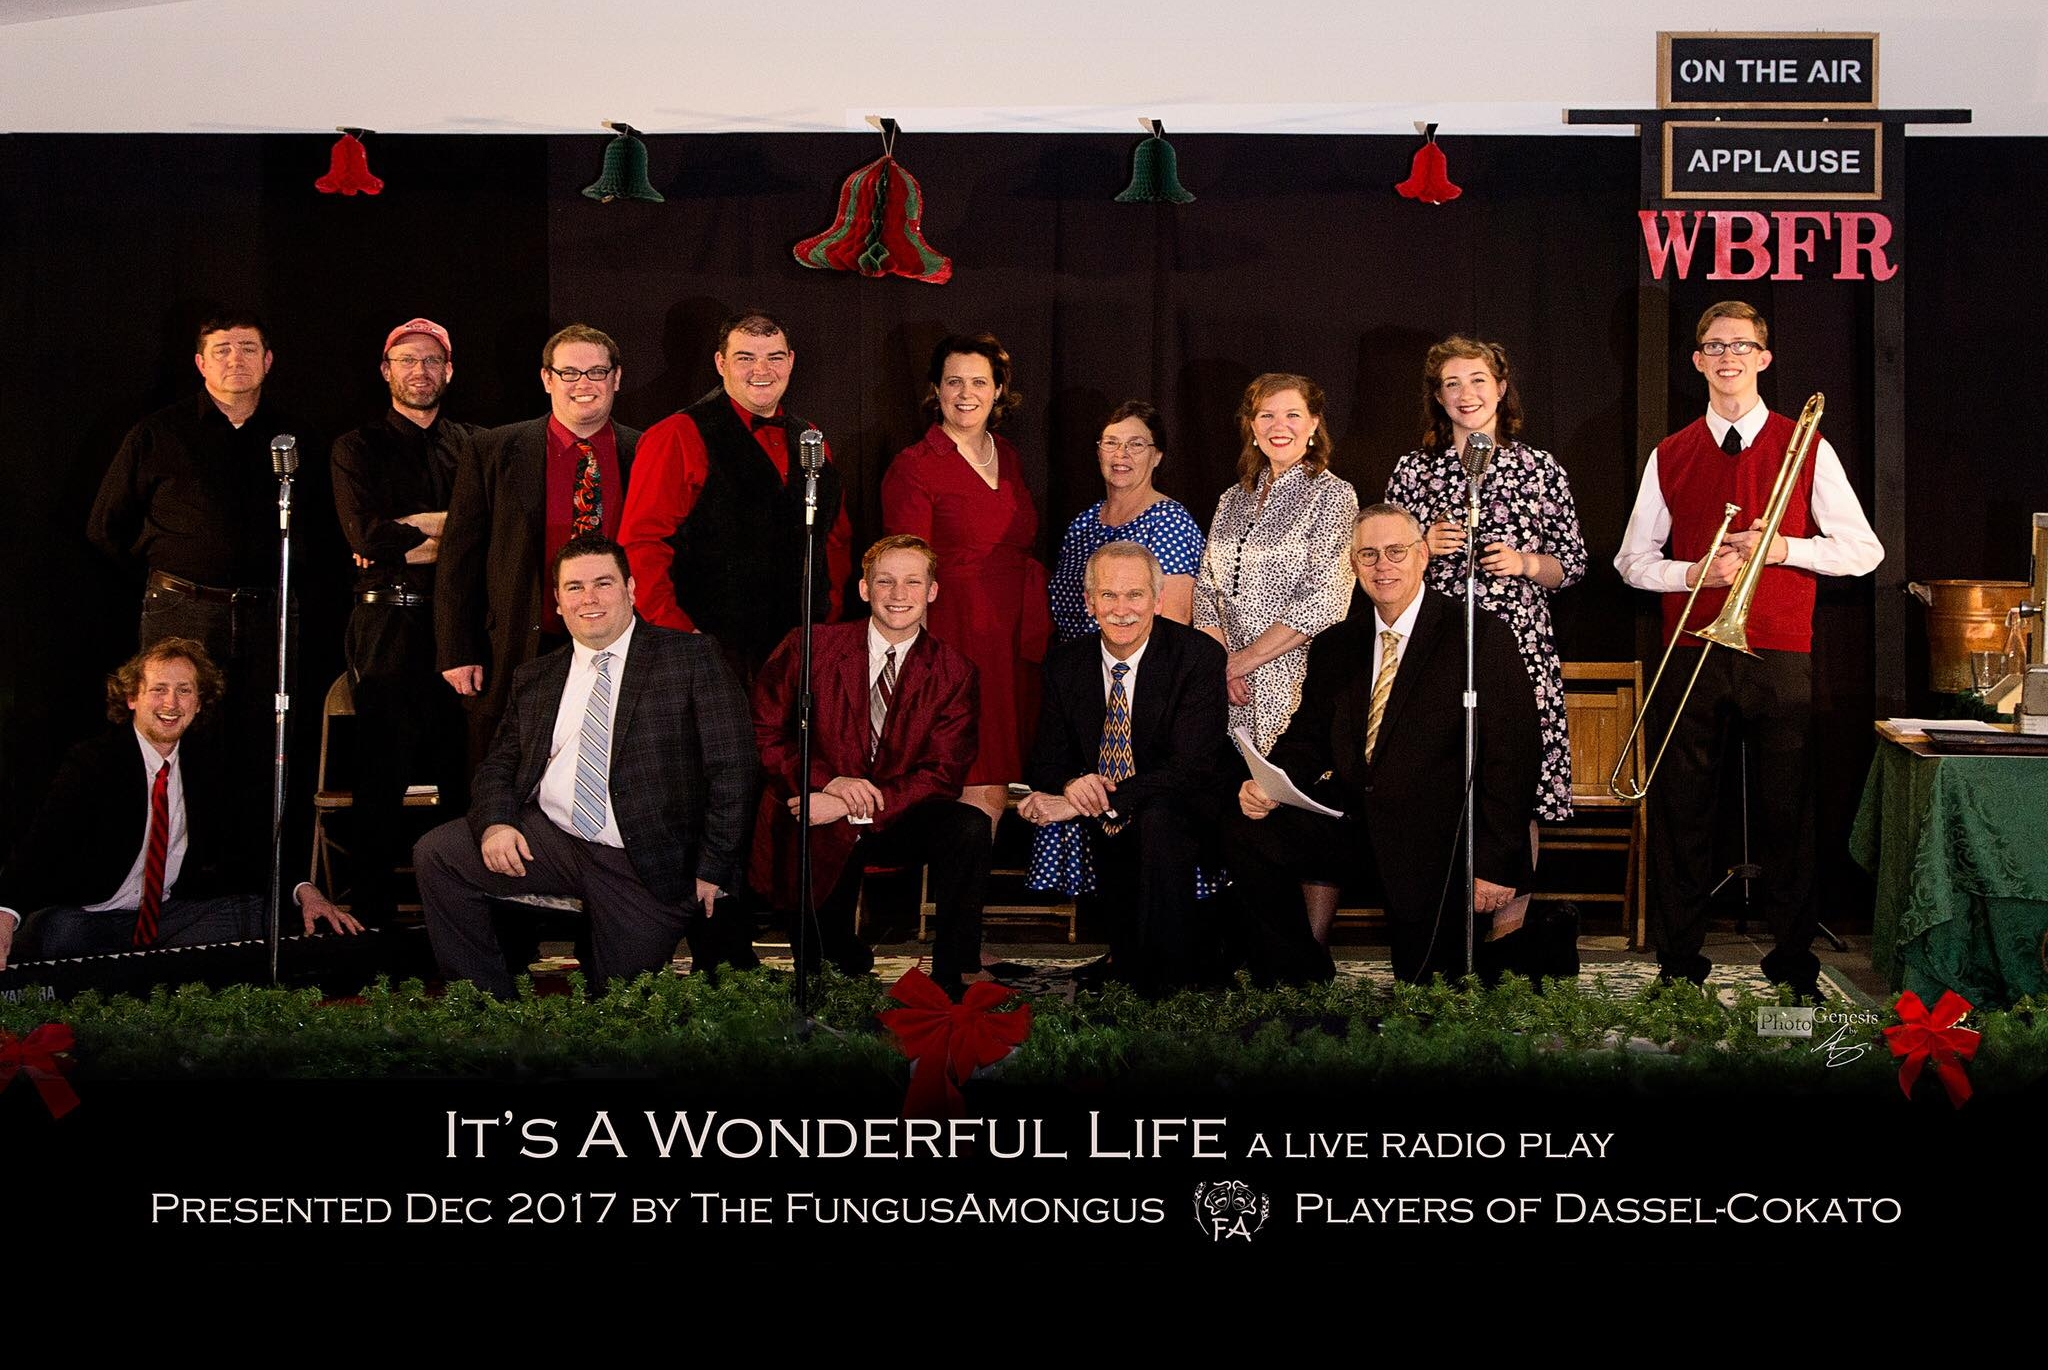 It's a Wonderful Life: A Live Radio Play - by Joe LandryDirected by Tom NelsonDecember 2017Pictured from Left to Right: (Front) Bergen Nelson, , Peter Dinius, Ron Hungerford, Terry Moore (Back) , Jesse Bunker, Tom Nelson, , Rhea Langemo, Name, Becky Hungerford, Erikka Langemo, Ethan Langemo